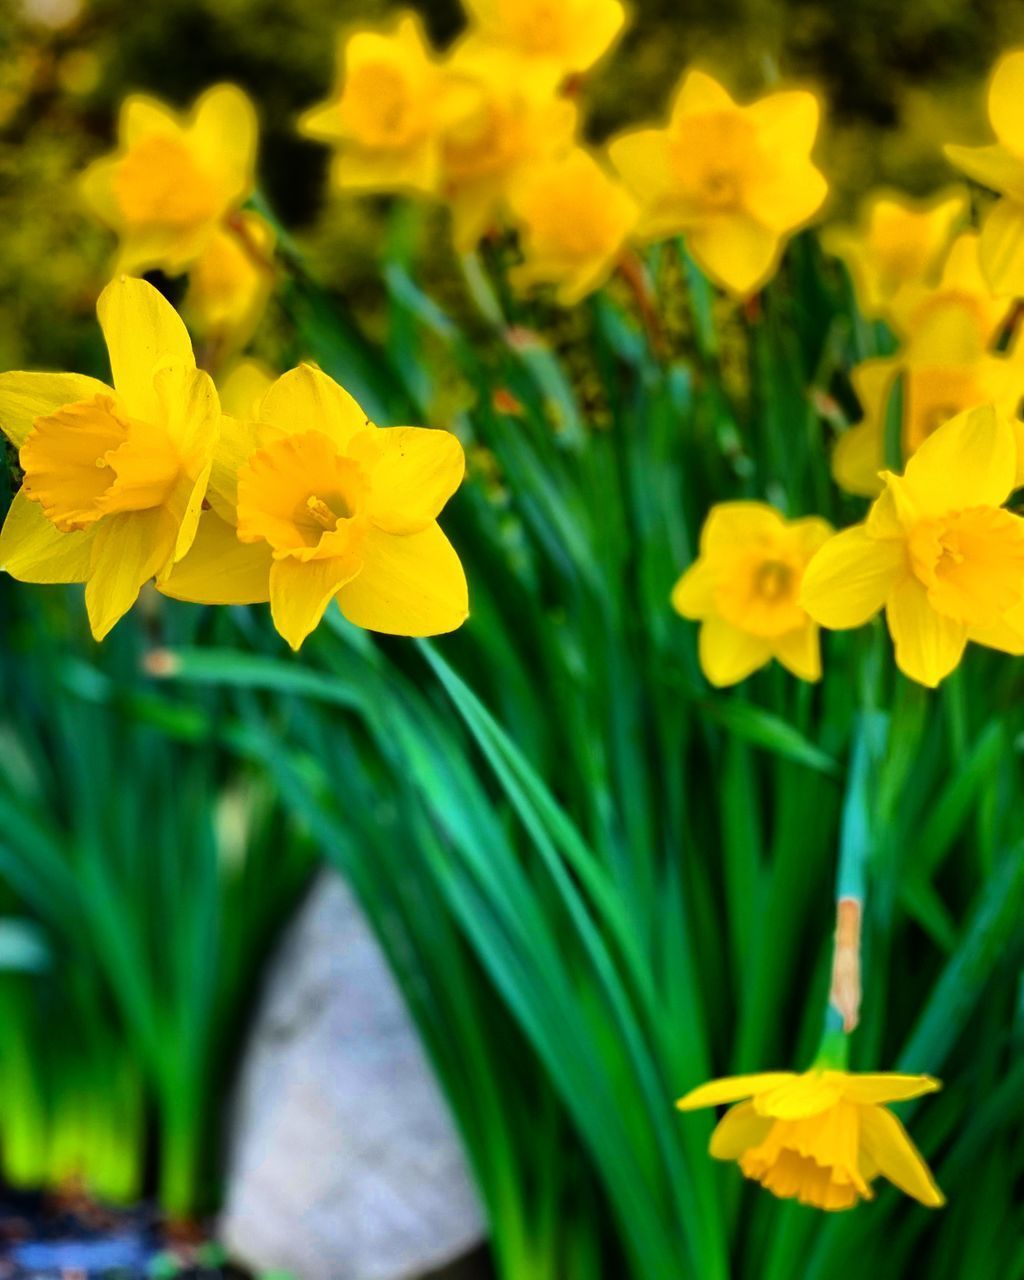 flowering plant, flower, plant, freshness, fragility, vulnerability, yellow, beauty in nature, growth, close-up, petal, nature, flower head, inflorescence, daffodil, no people, day, botany, green color, selective focus, outdoors, springtime, flowerbed